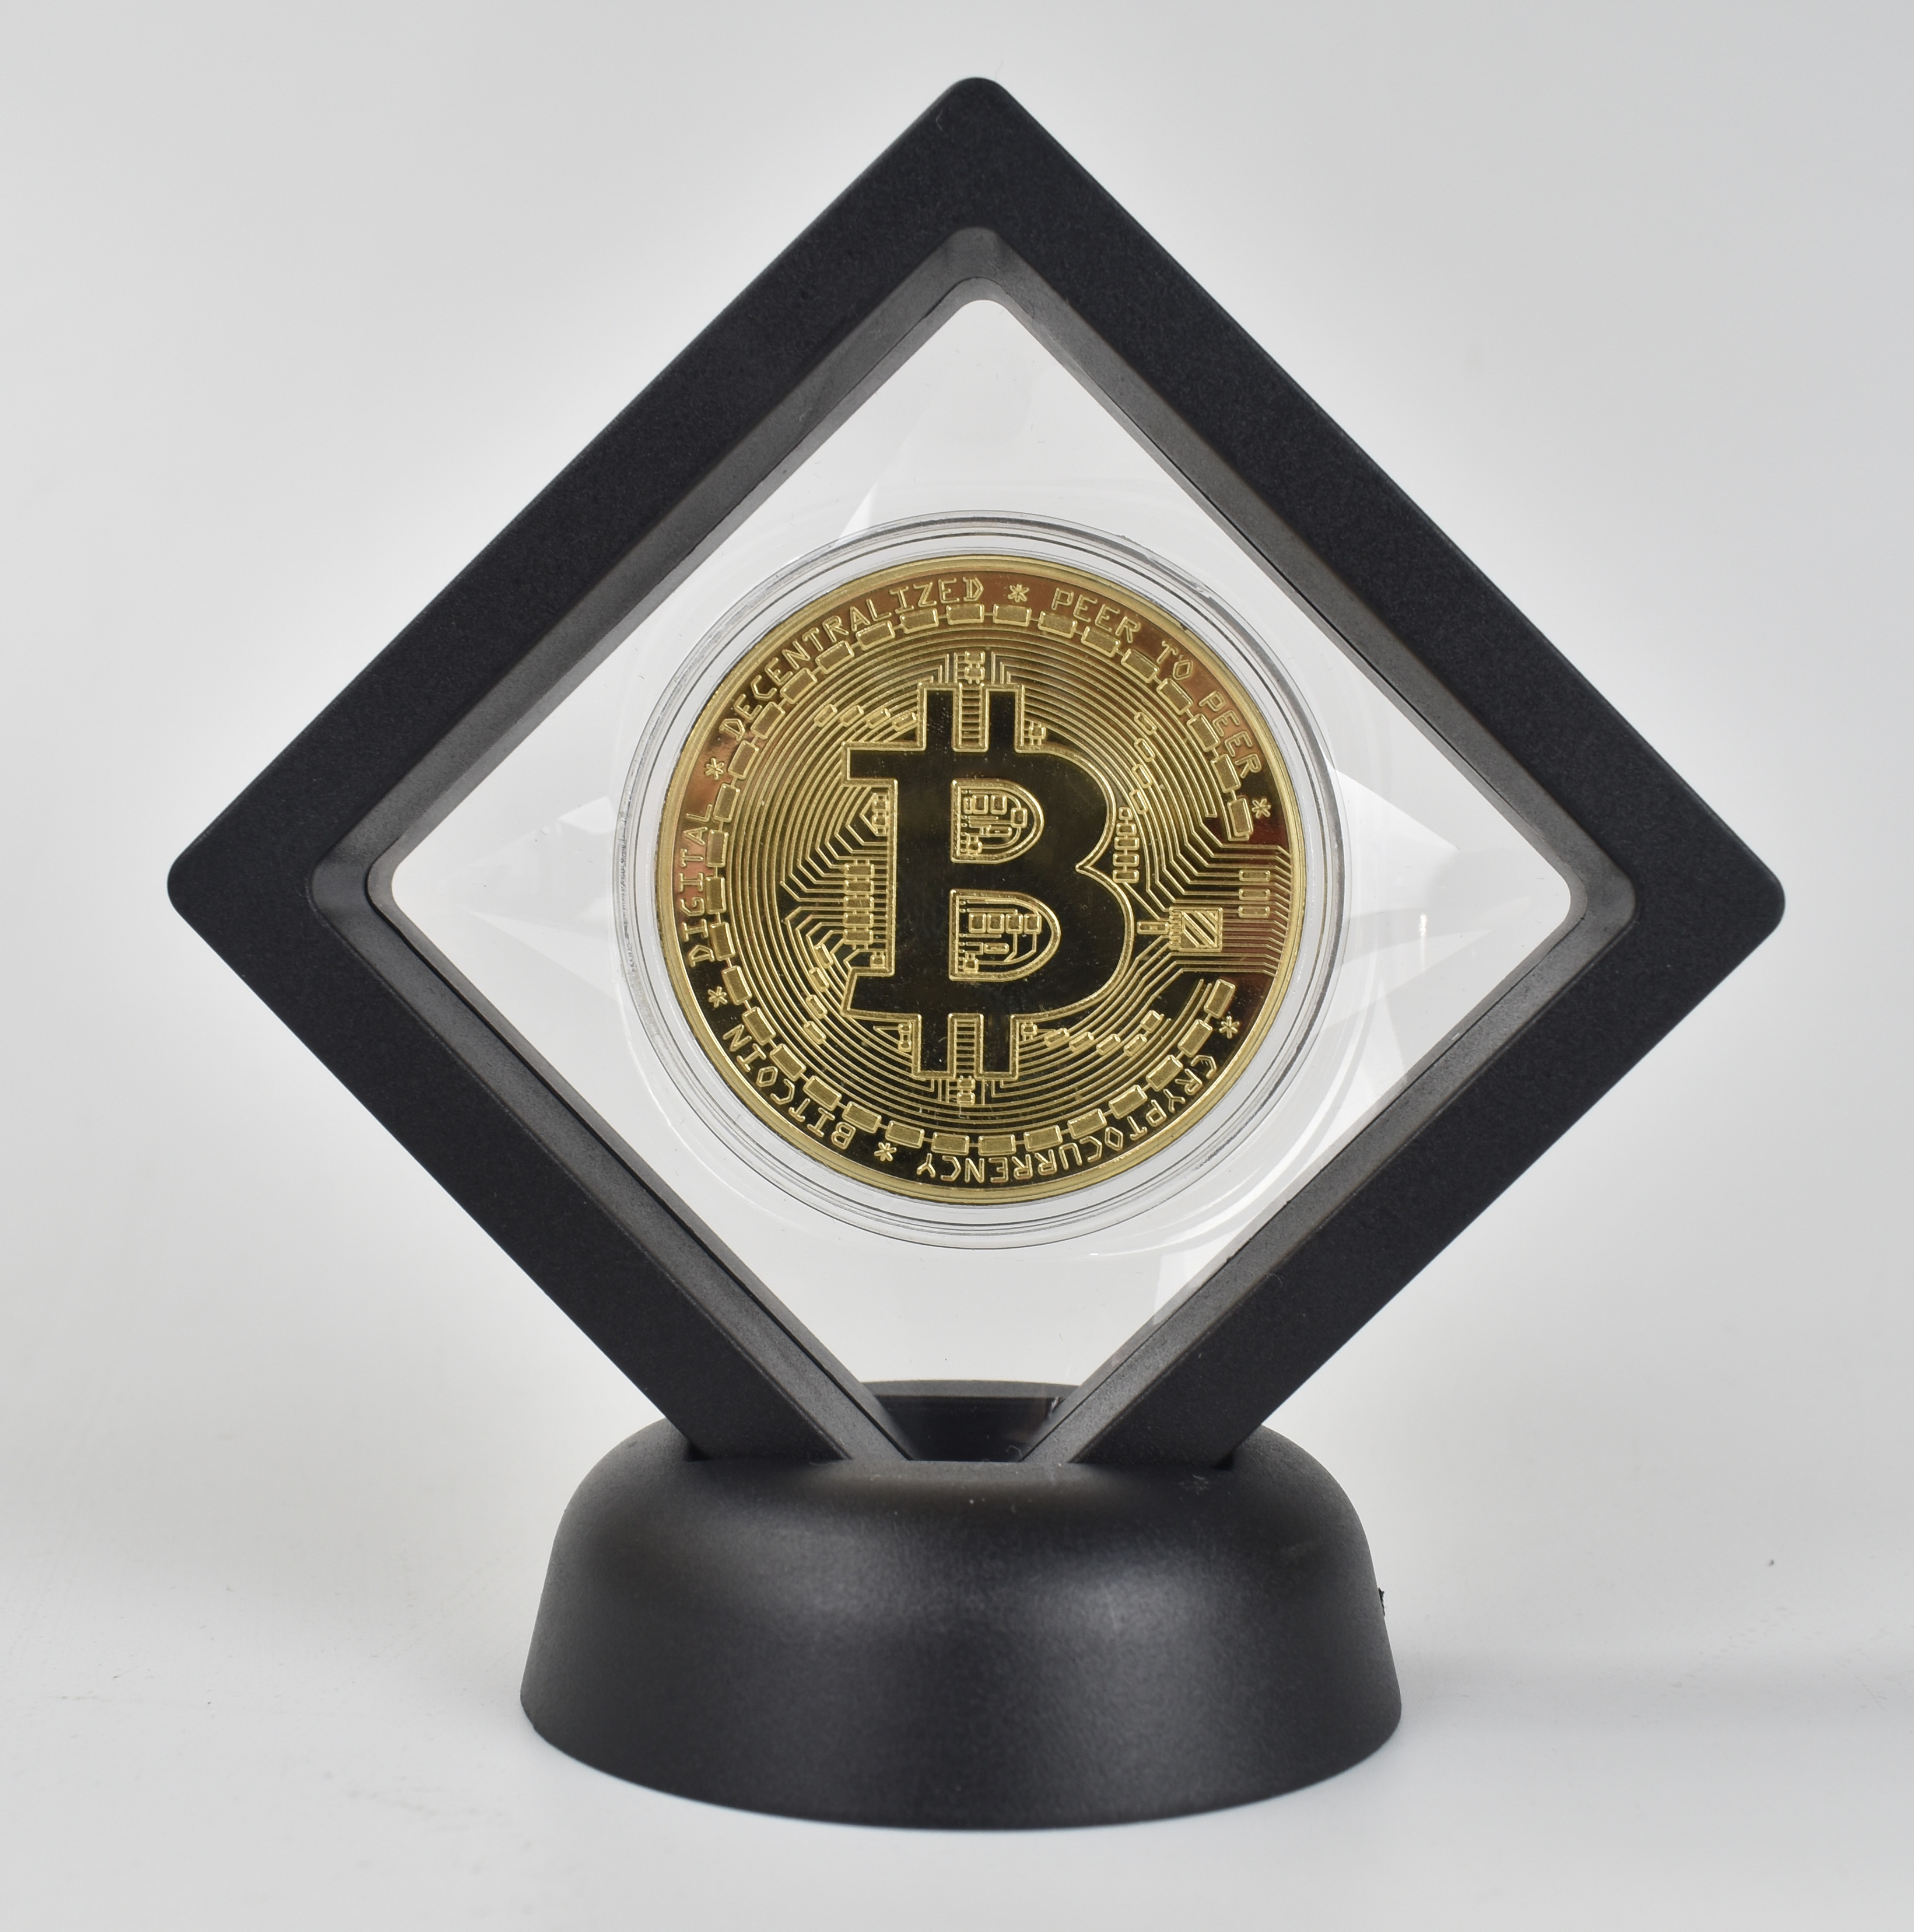 Bit Coin gold  Btc coin cions Litecoin Ripple Ethereum Cryptocurrency Metal Commemoration Gift Physical antique imitation-0